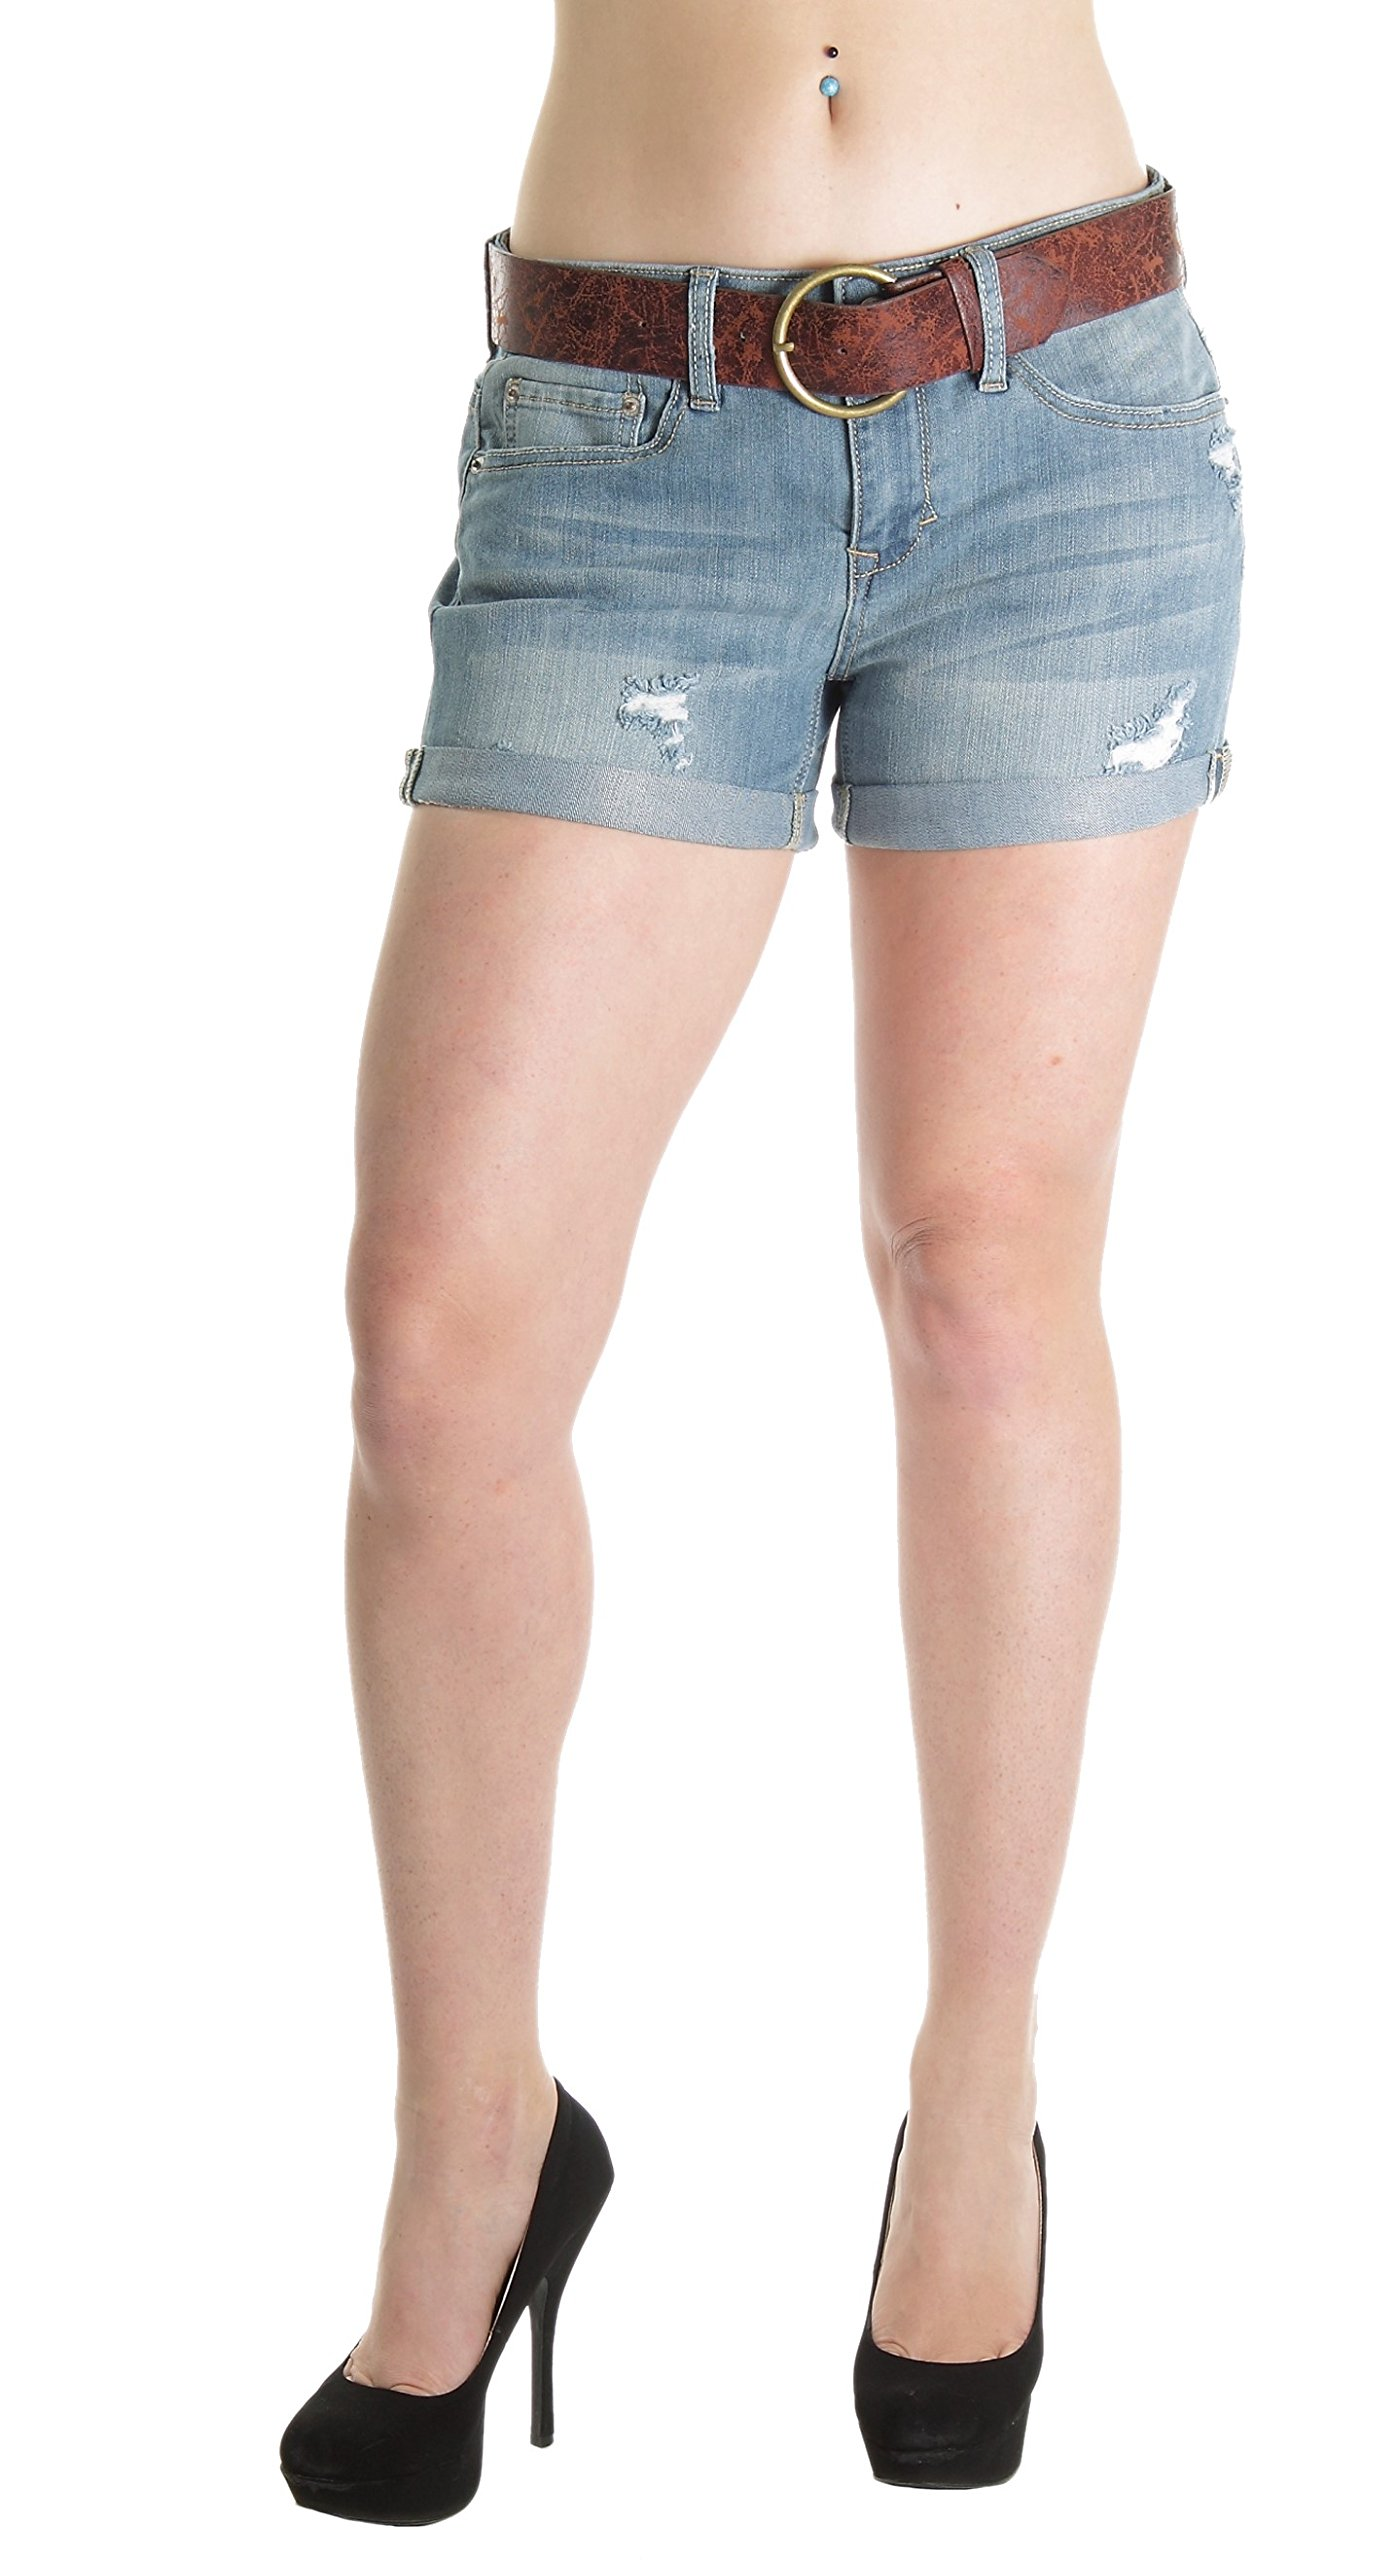 Bongo KA8570SH Jeans, Premium Destroyed Ripped Belted Booty Shorts in Washed Blue Size 1